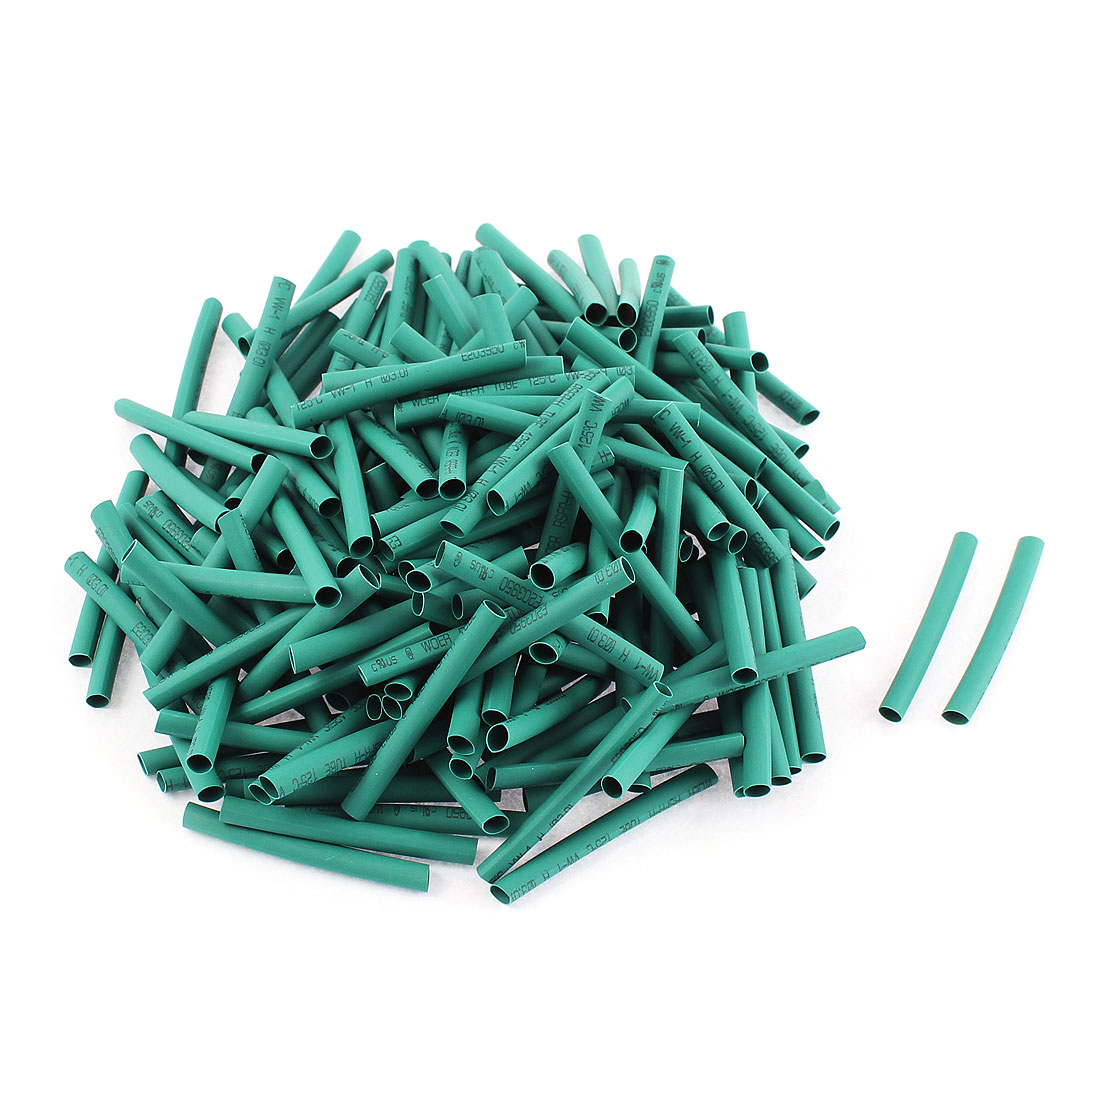 Electrical Connection Cable Sleeve 40mm Length Heat Shrink Tubing Green 200Pcs